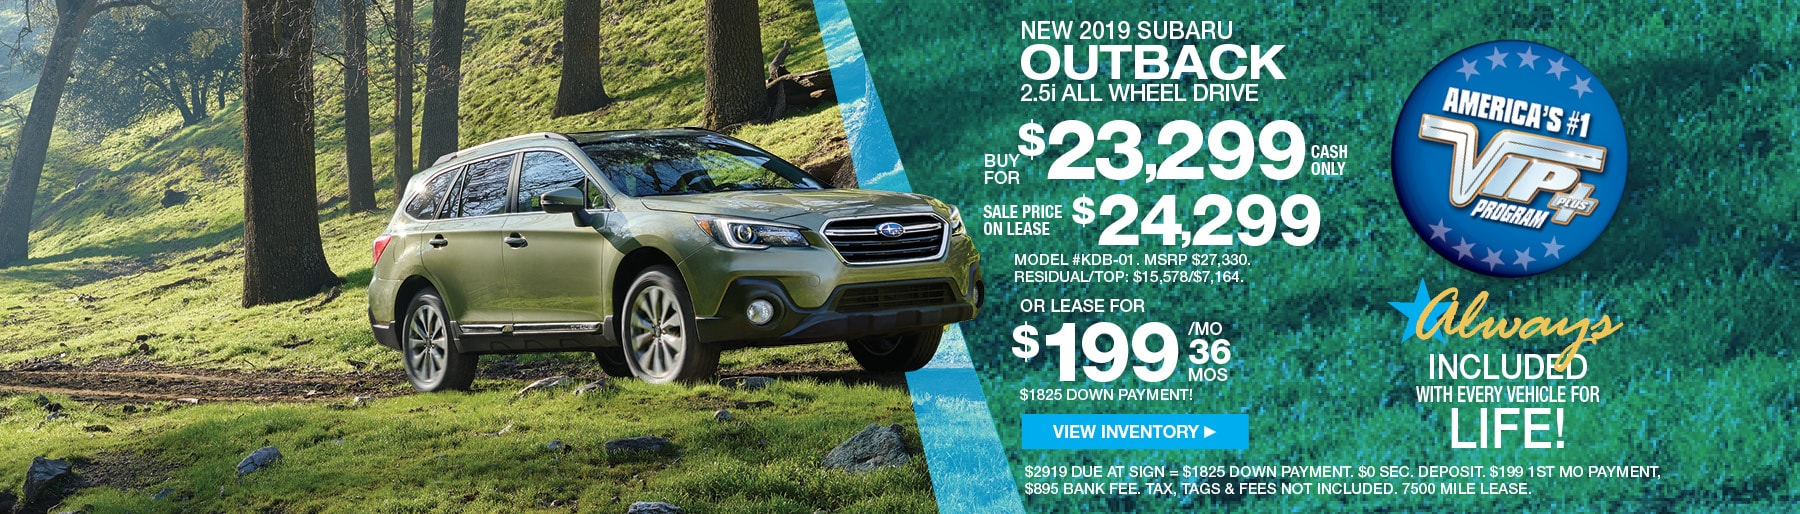 New Subaru Outback Inventory for sale on Long Island | Grand Prix Subaru